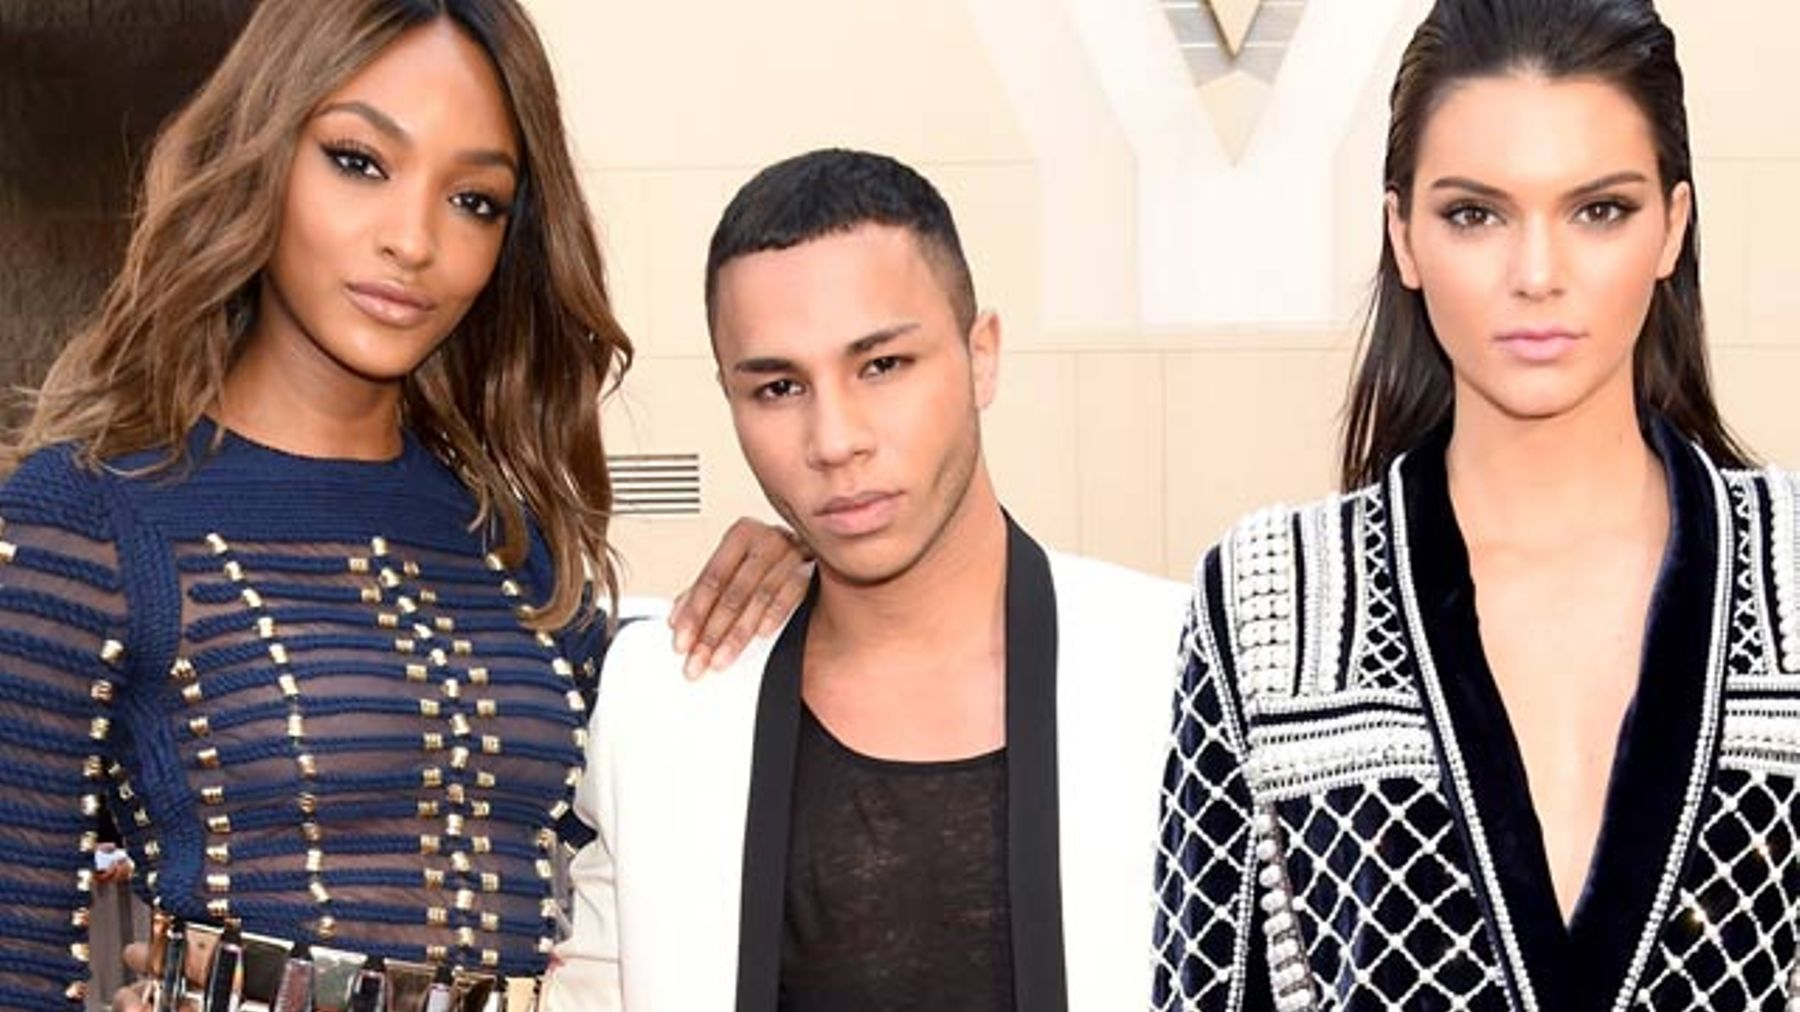 e183b77d The Victoria's Secret x Balmain Collection Is Set To Be Sexiest Fashion  Collab Ever